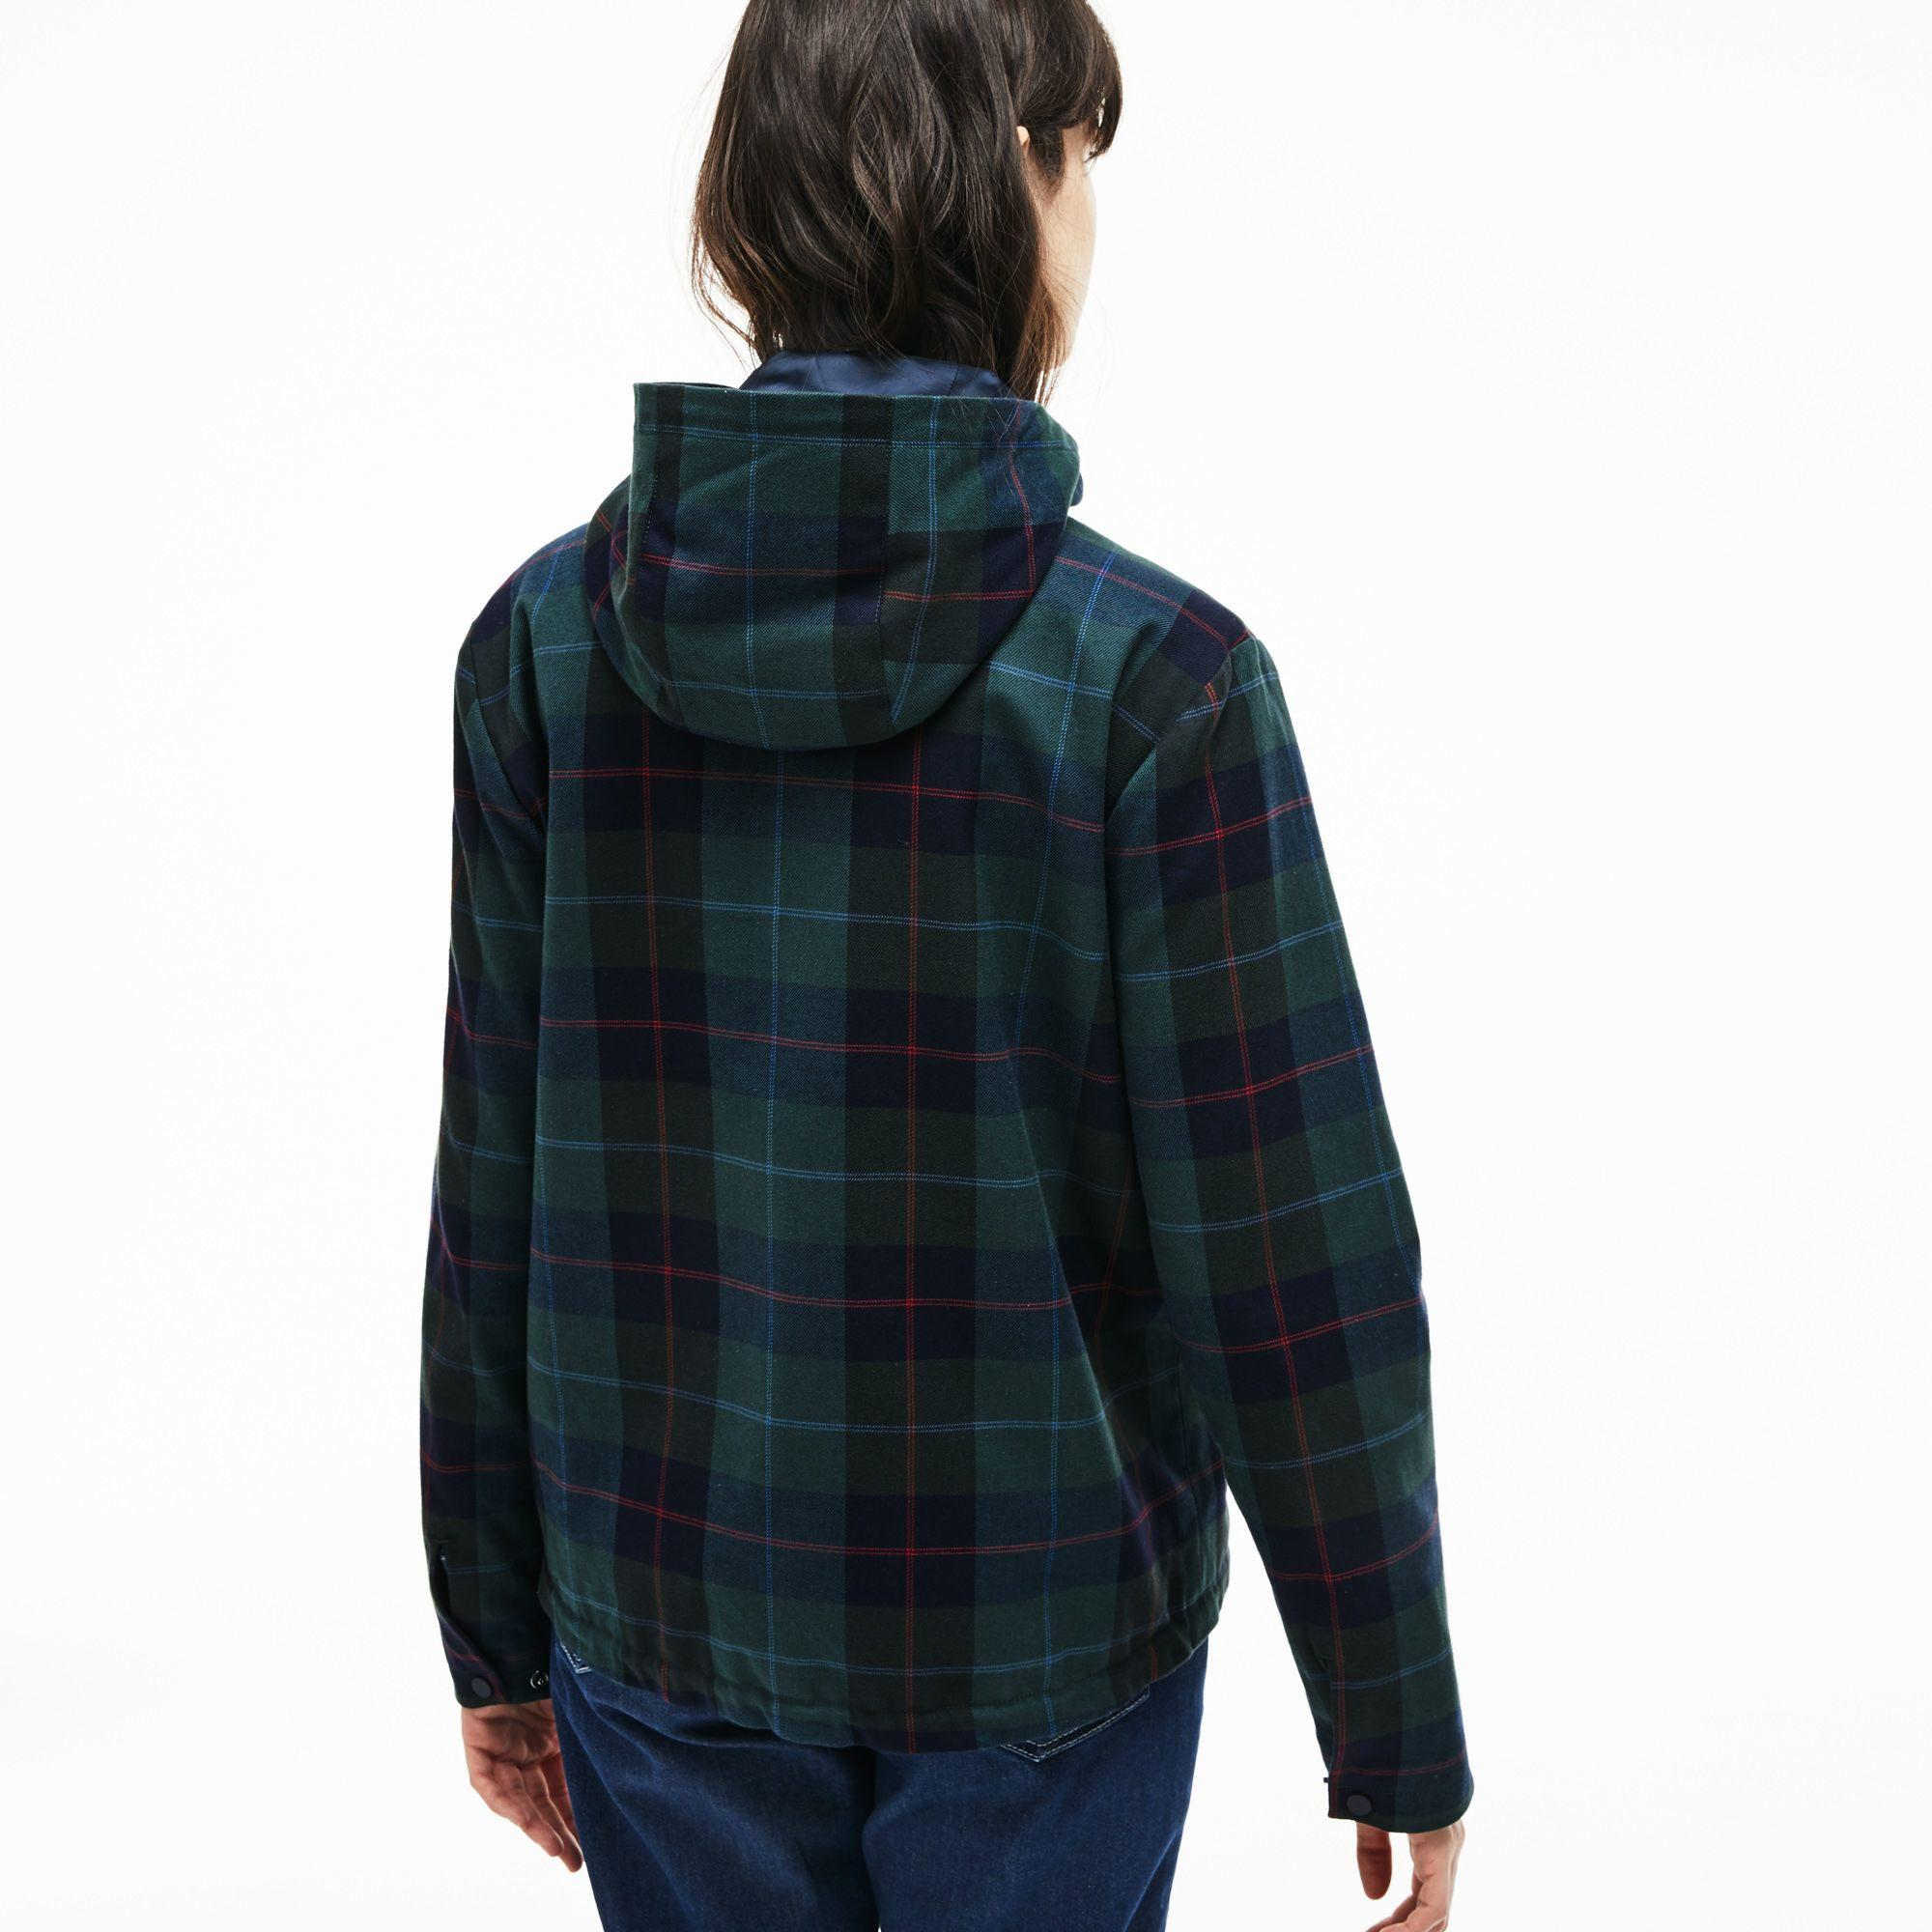 114d4bacbd Women's Tartan Check Print Cotton Canvas Zippered Pea Coat in Green / Blue